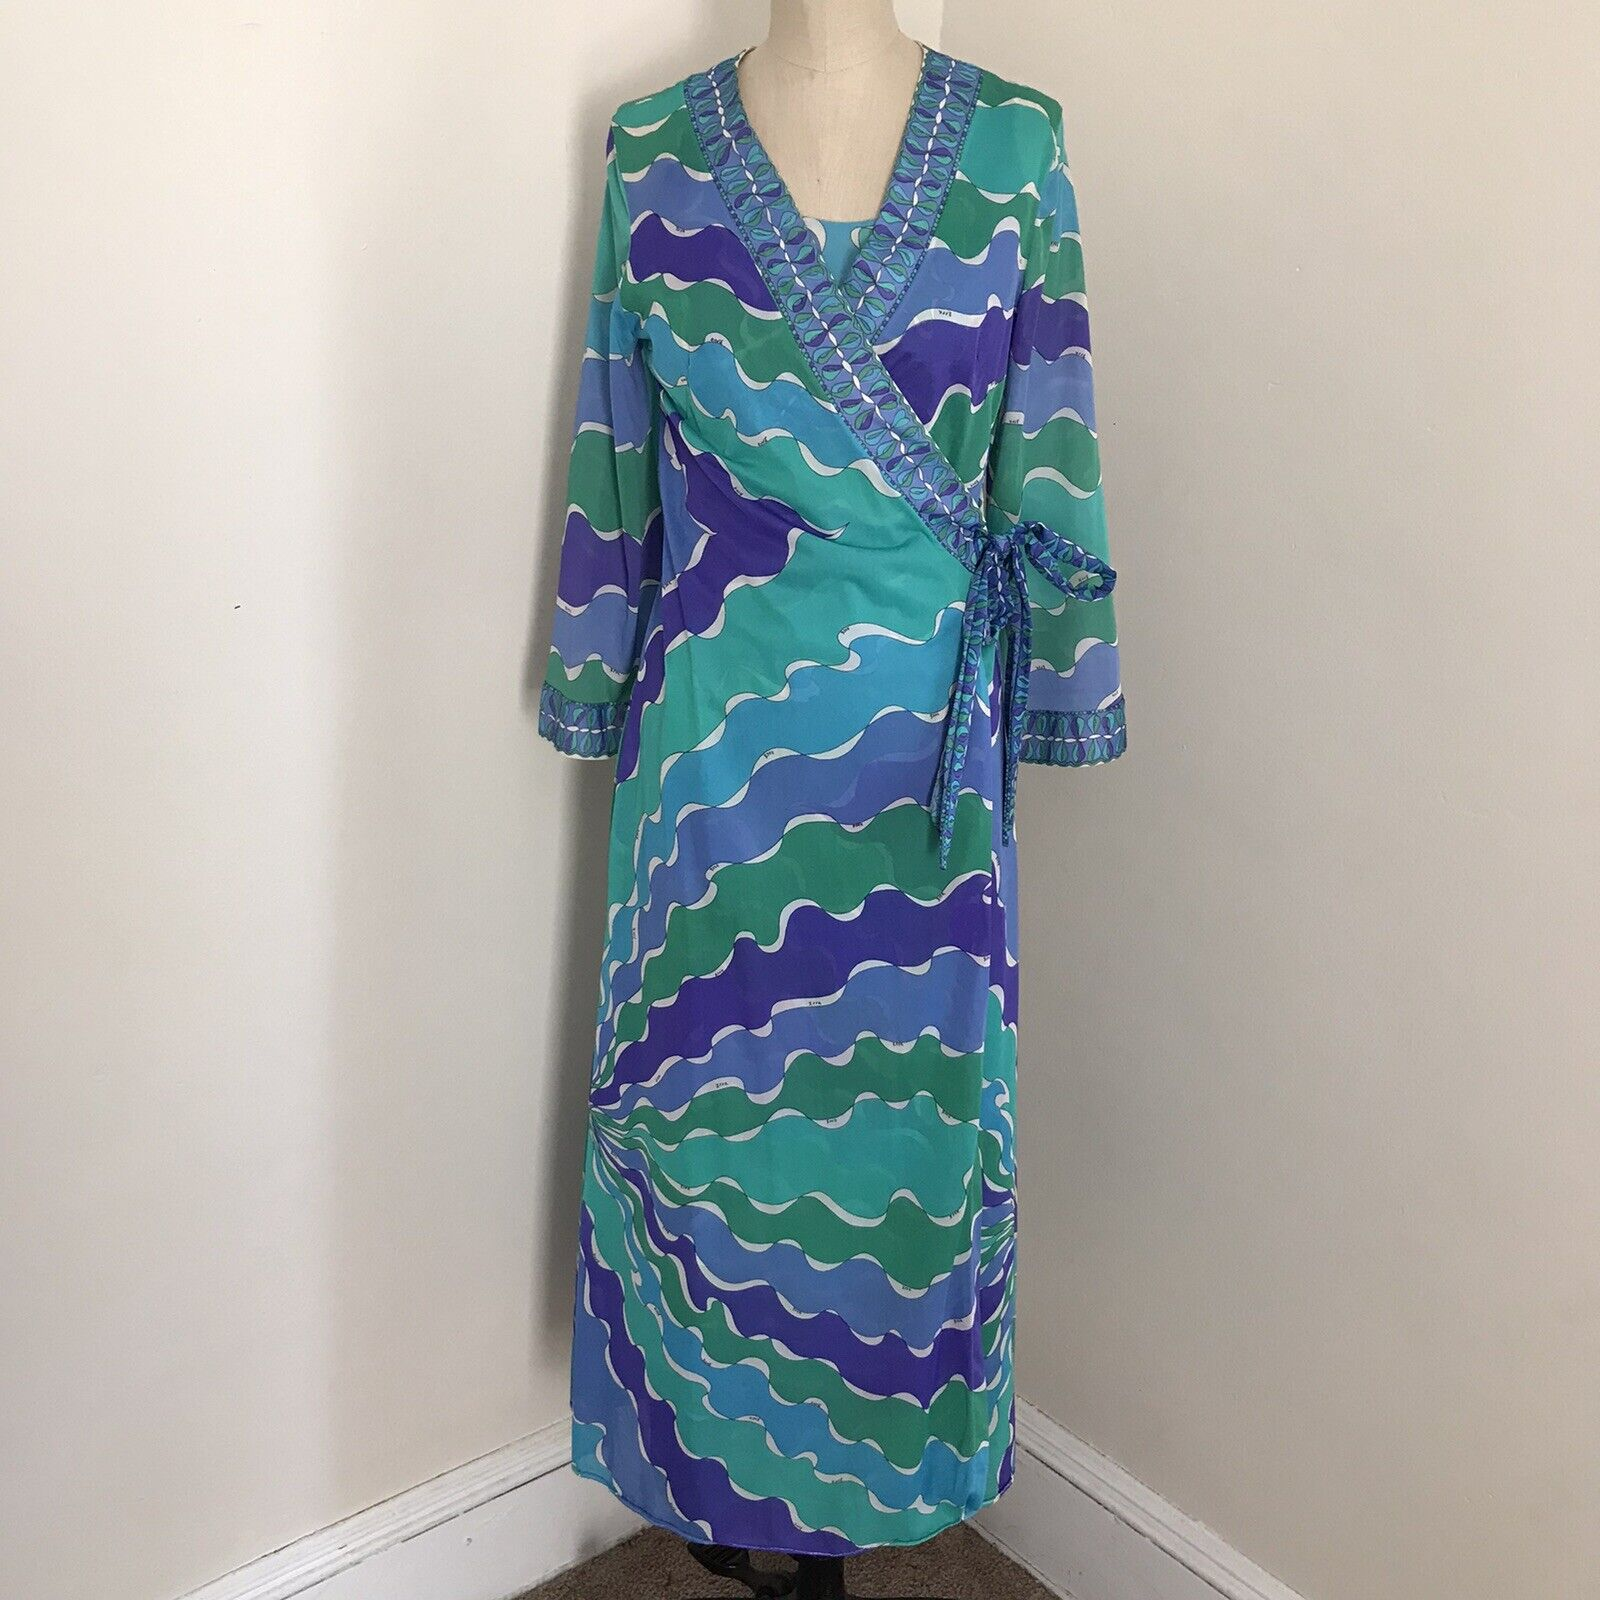 Emilio Pucci Formfit Rogers Nightgown Robe Vintage Small Negligee Italy